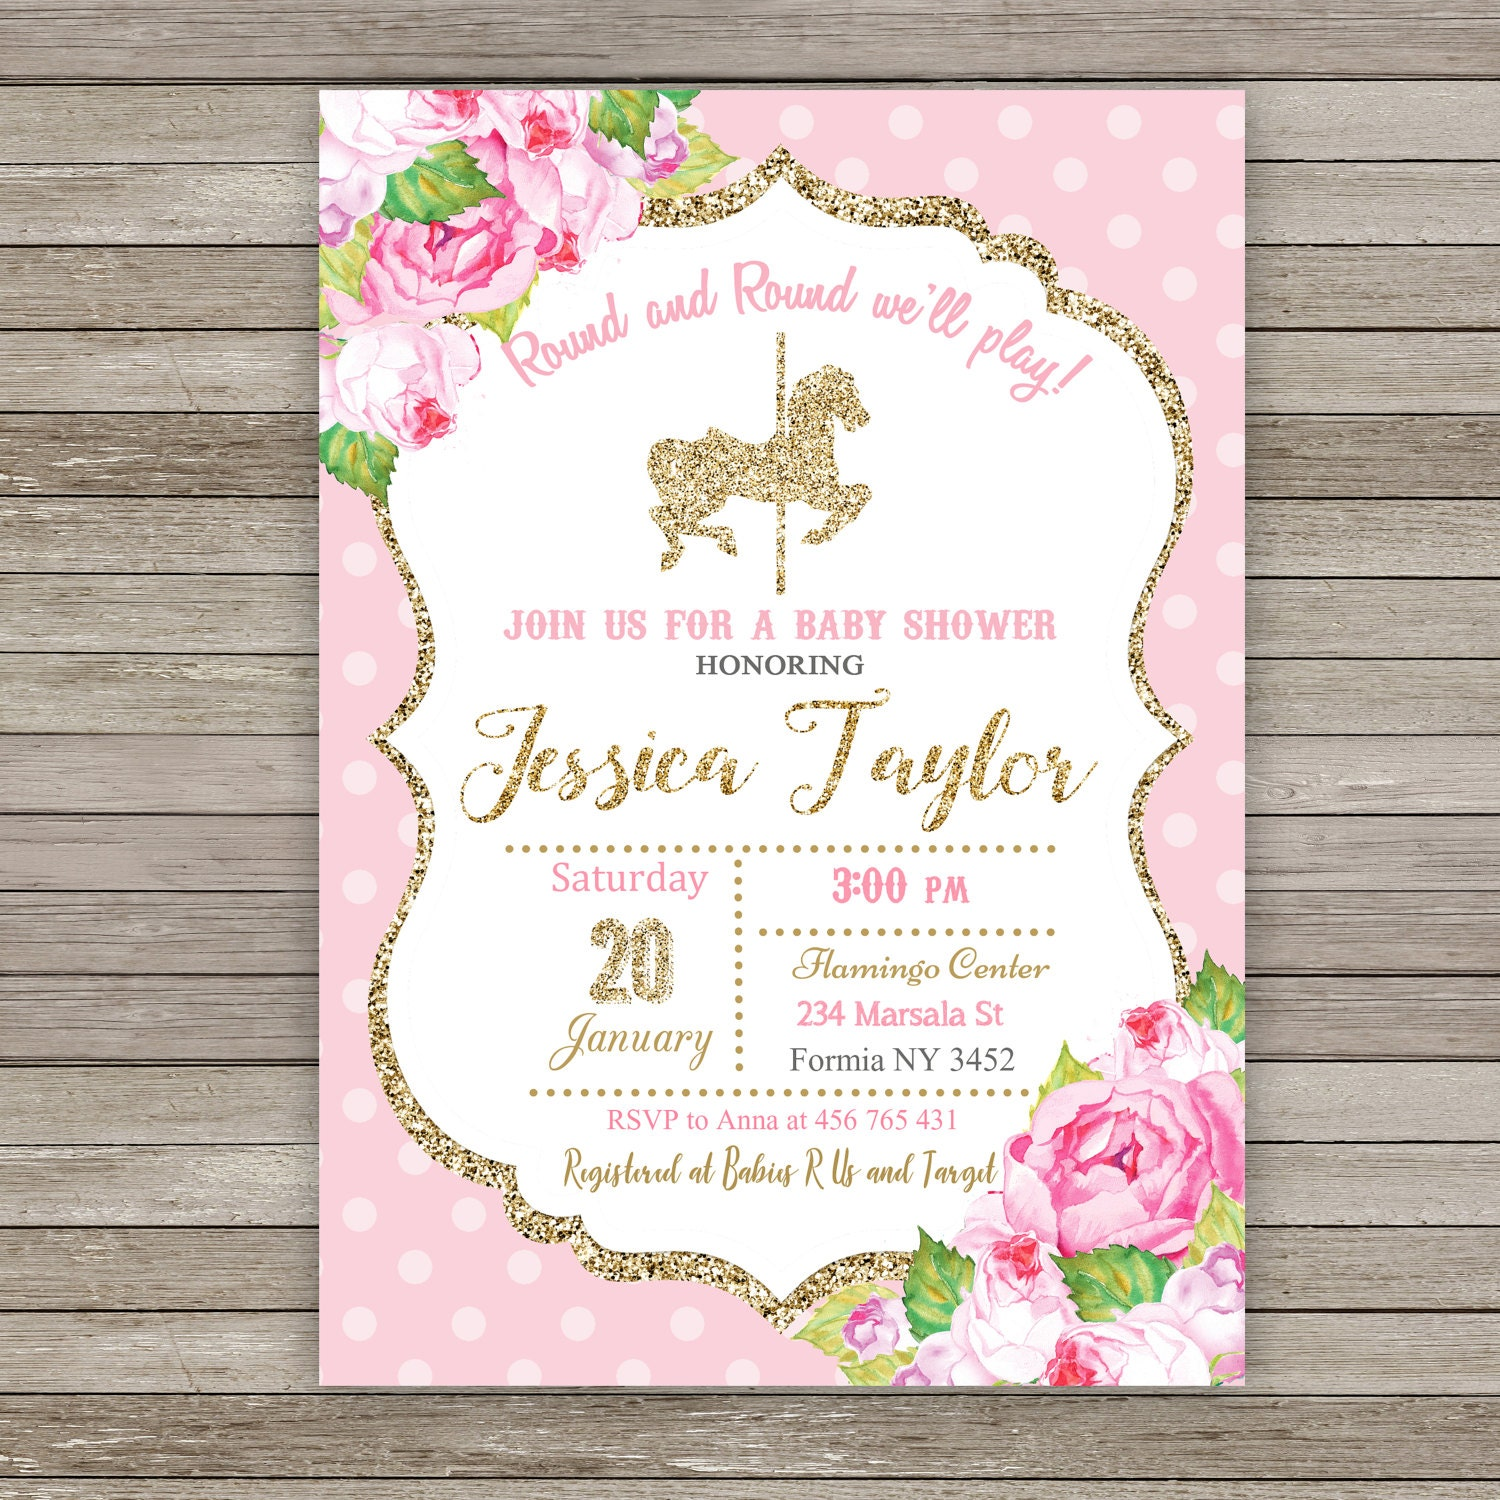 10 OFF Printed or Digital Carousel Baby Shower Invitation – Carousel Party Invitations